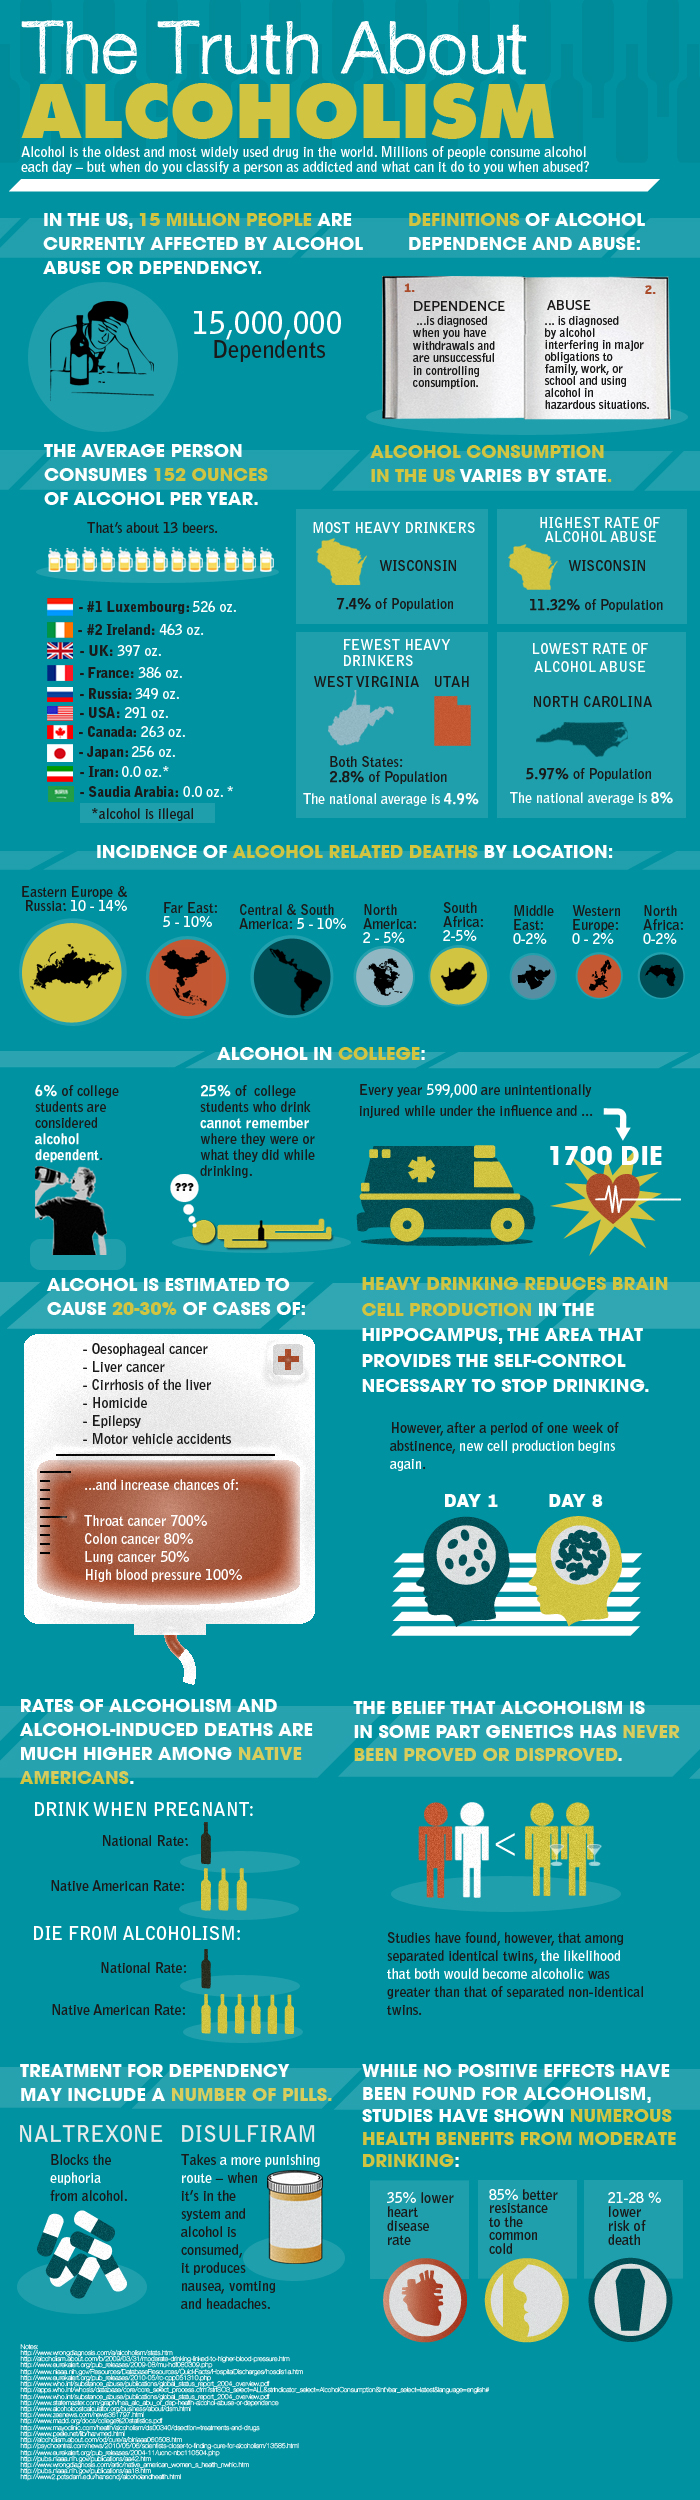 Alcoholism Facts and Statistics